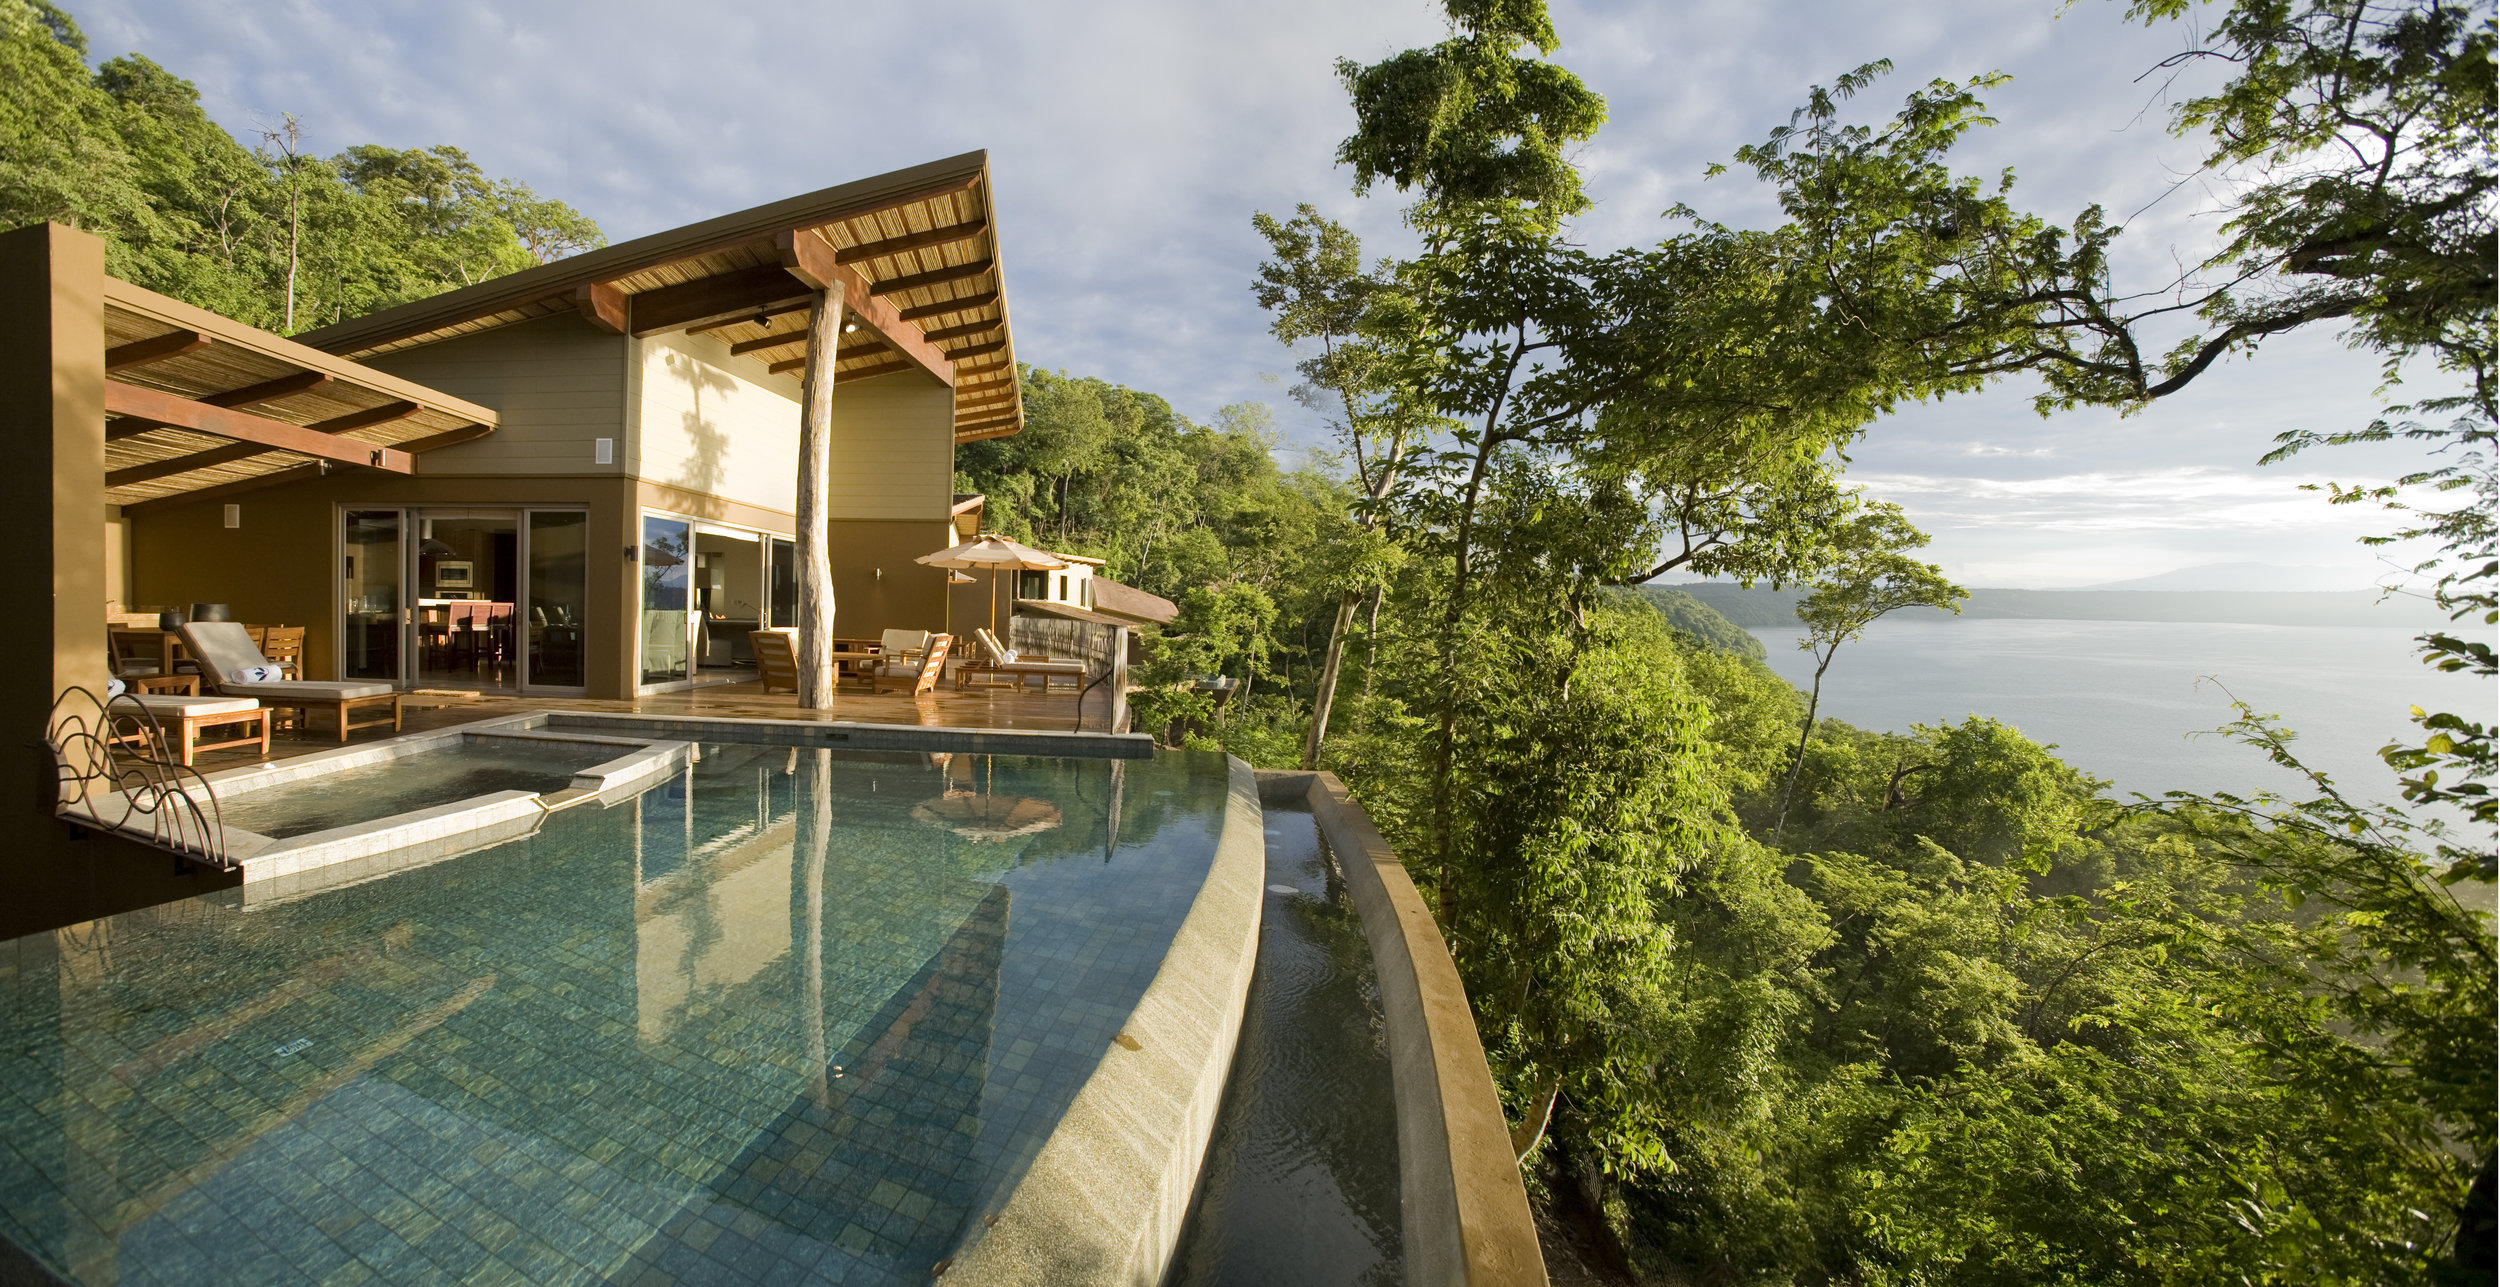 costa-rica-jicaro16-pool.jpg